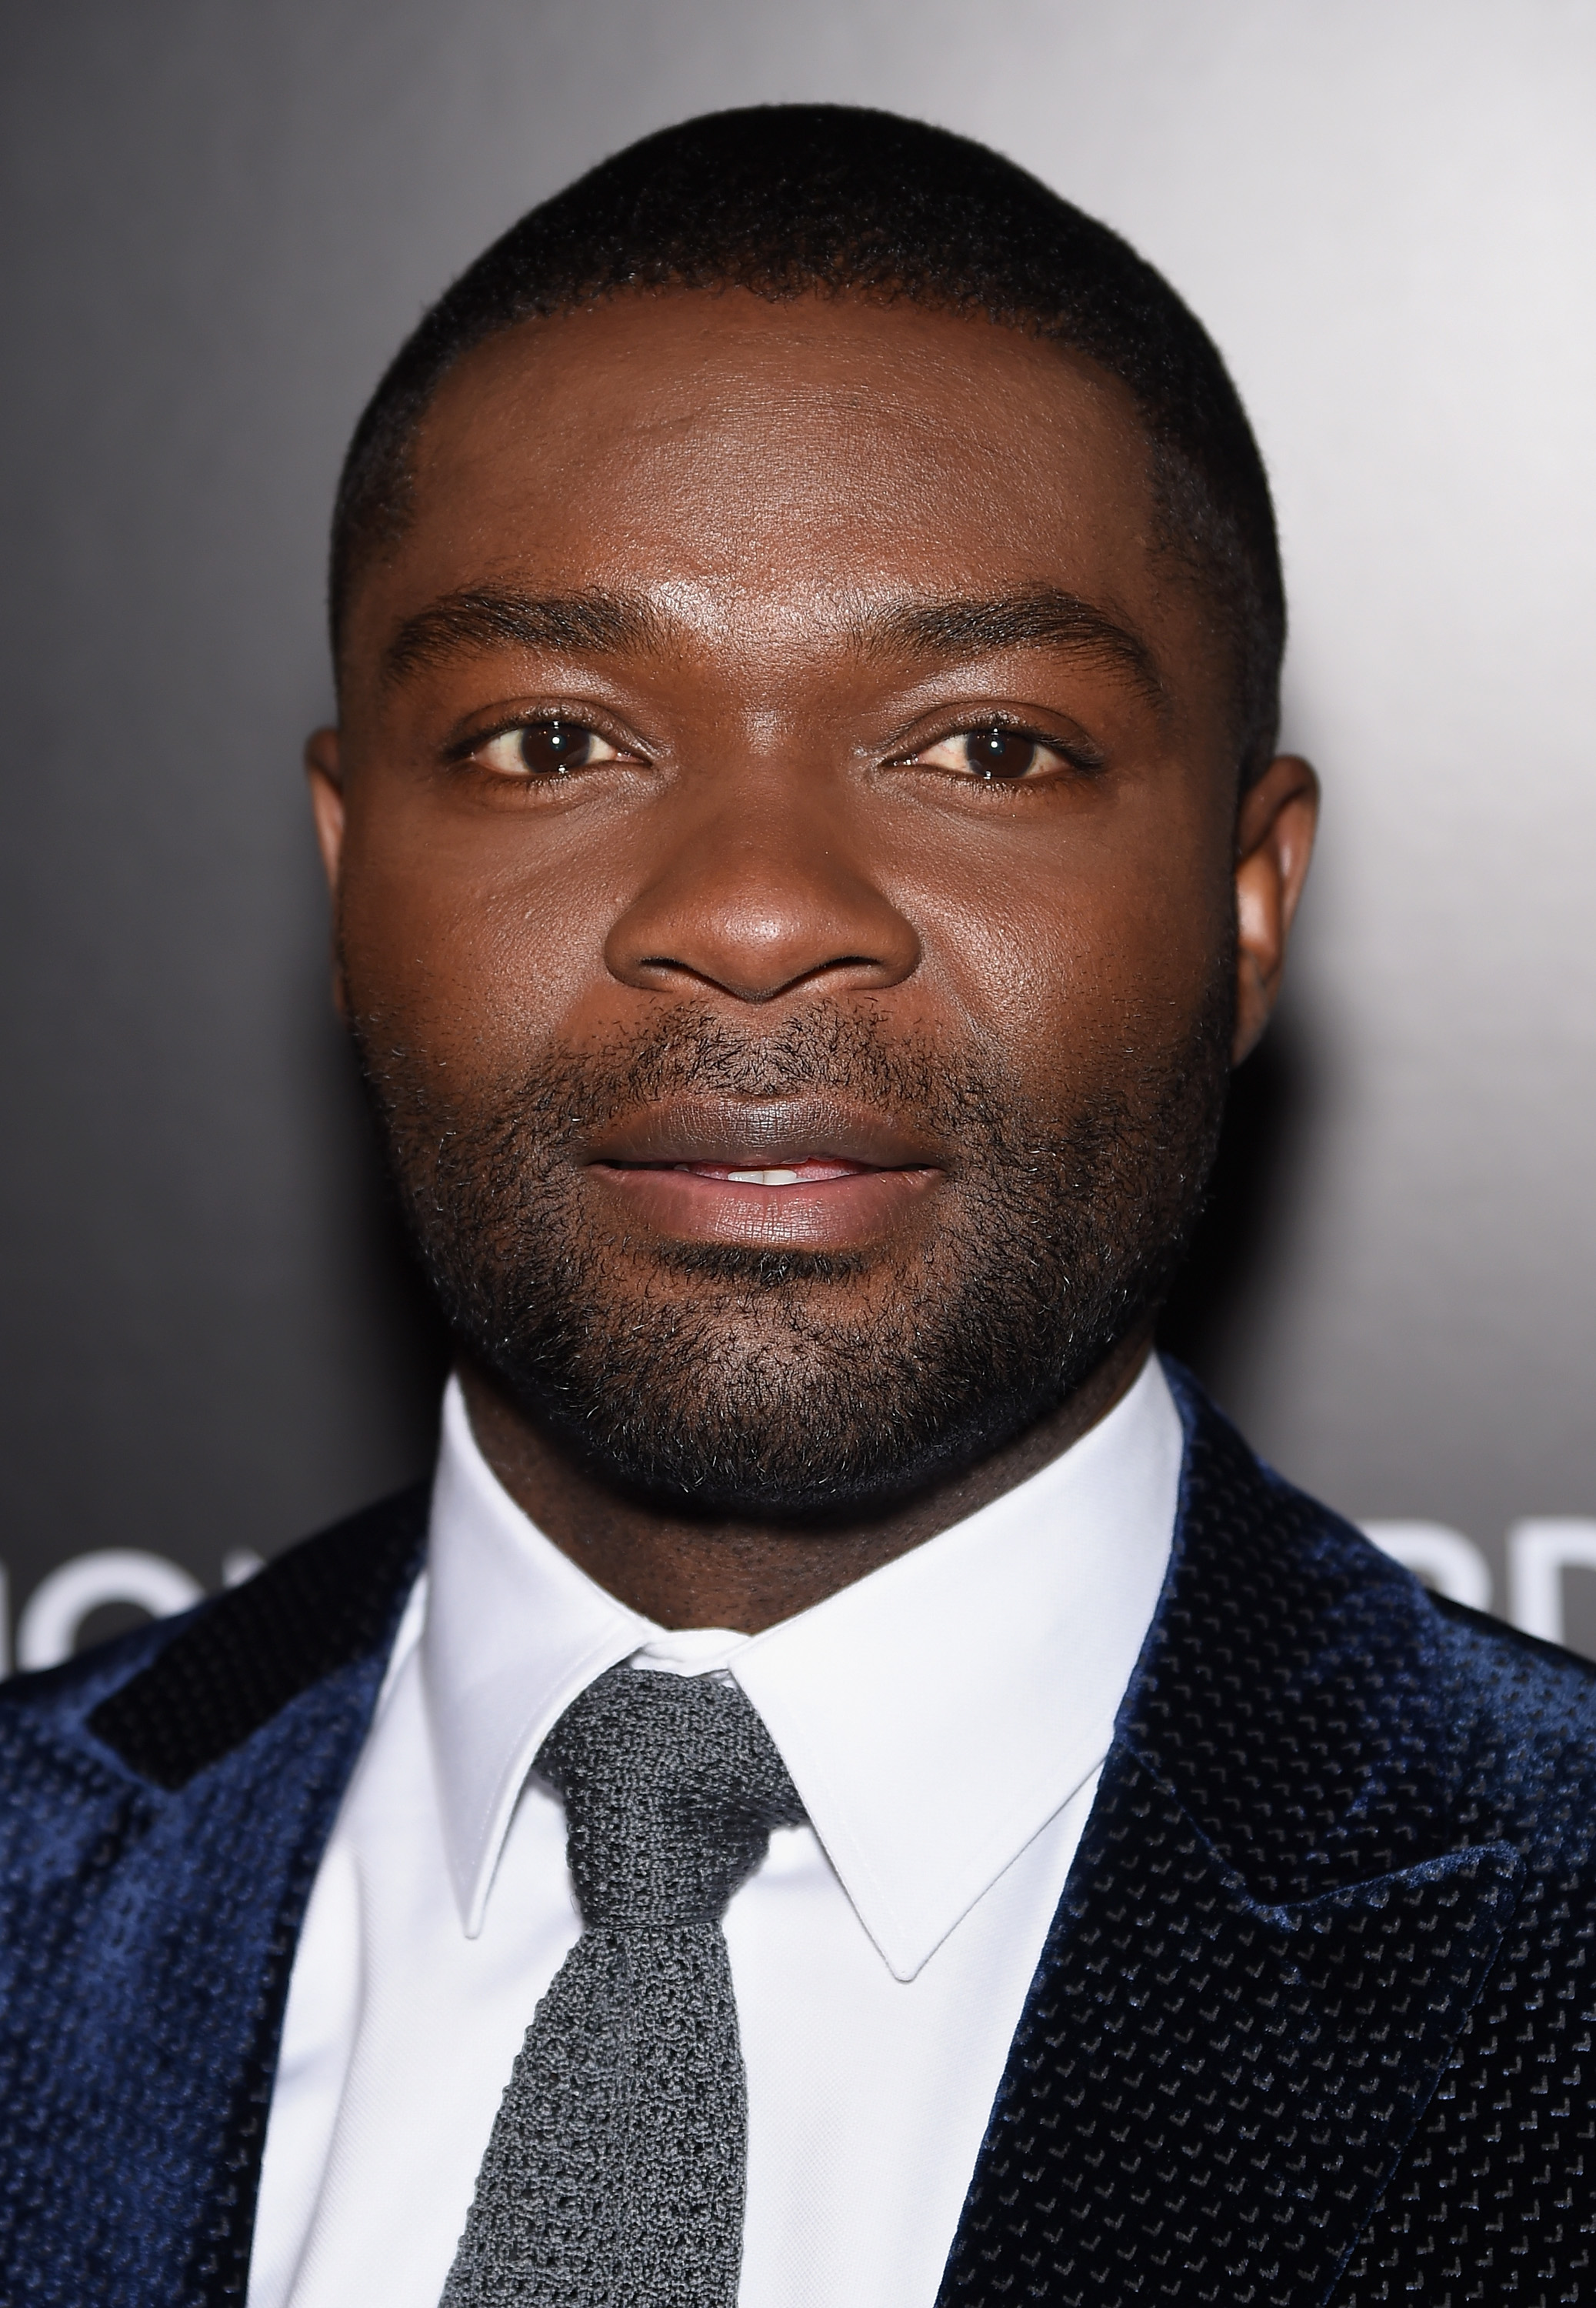 David Oyelowo attends the 2014 National Board of Review Gala on Jan. 6, 2015 in New York City.